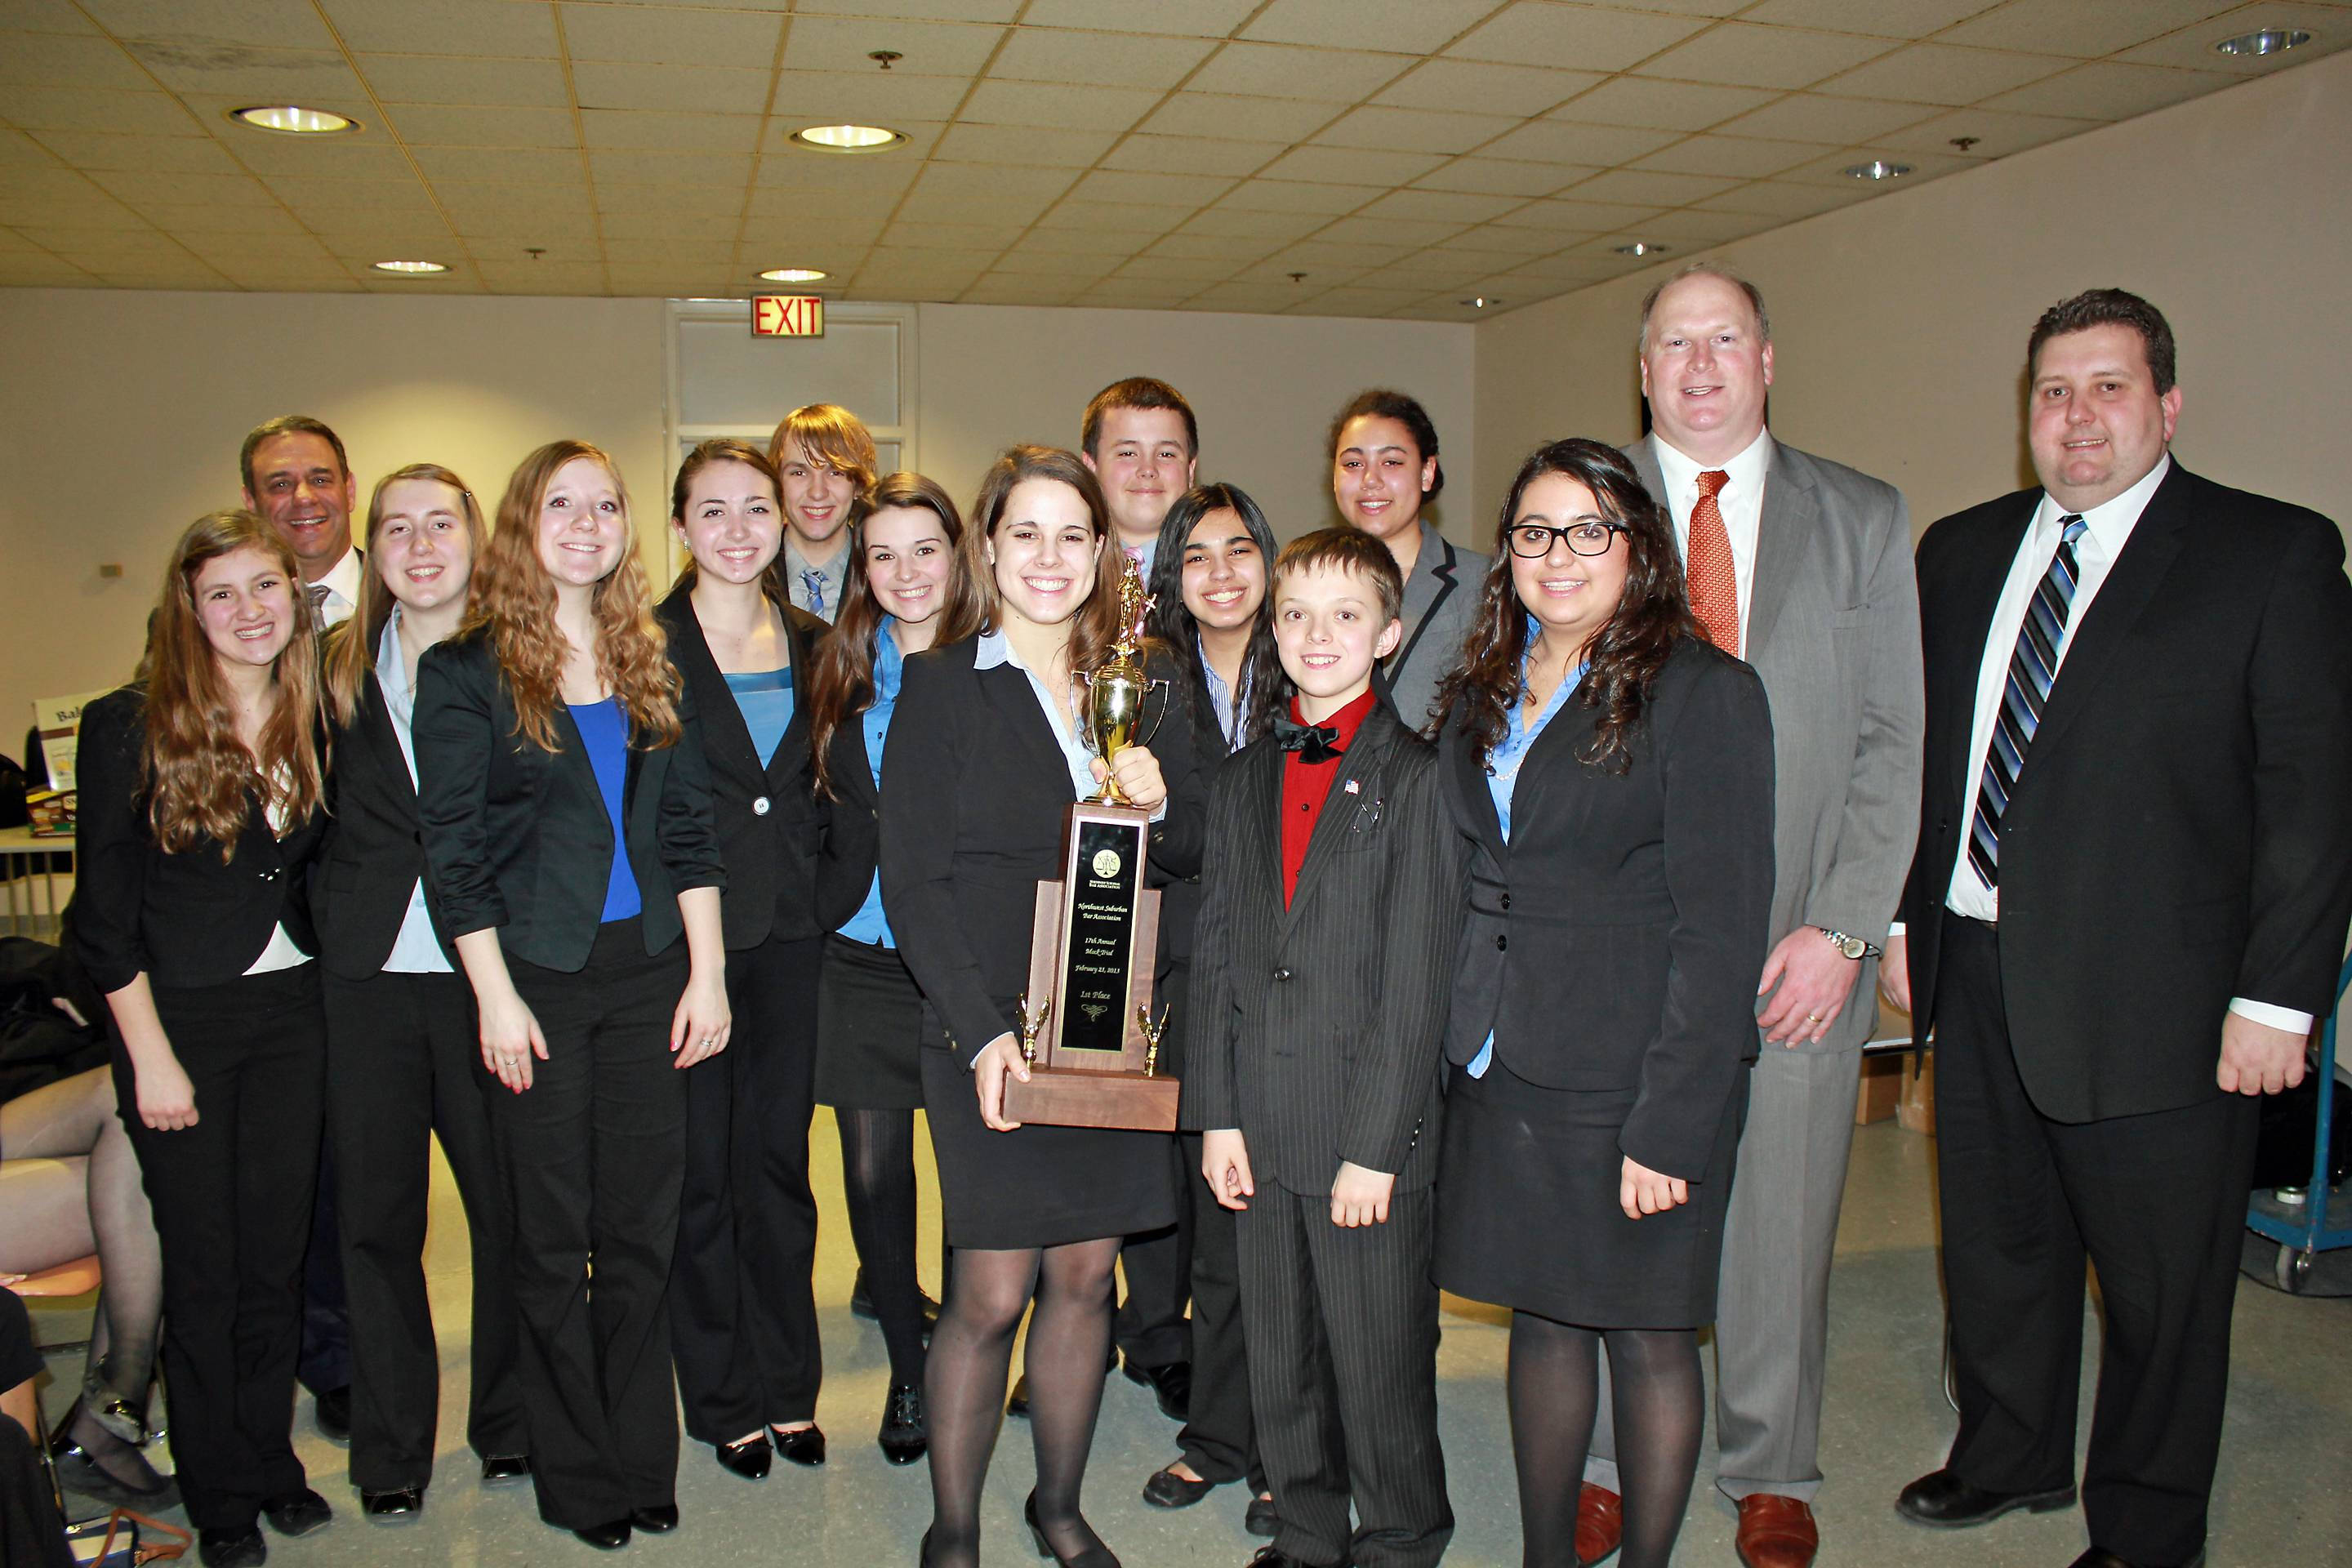 Members of the St. Charles North High School Mock Trial team receive the first-place trophy after winning the Northwest Suburban Bar Association's 17th annual Mock Trial Invitational on Feb. 21. Also pictured are Neil H. Good, president of the NWSBA (far left, in the back) and Richard Karwaczka (far right) and Jay Andrew, co-chairs of the Mock Trial event.